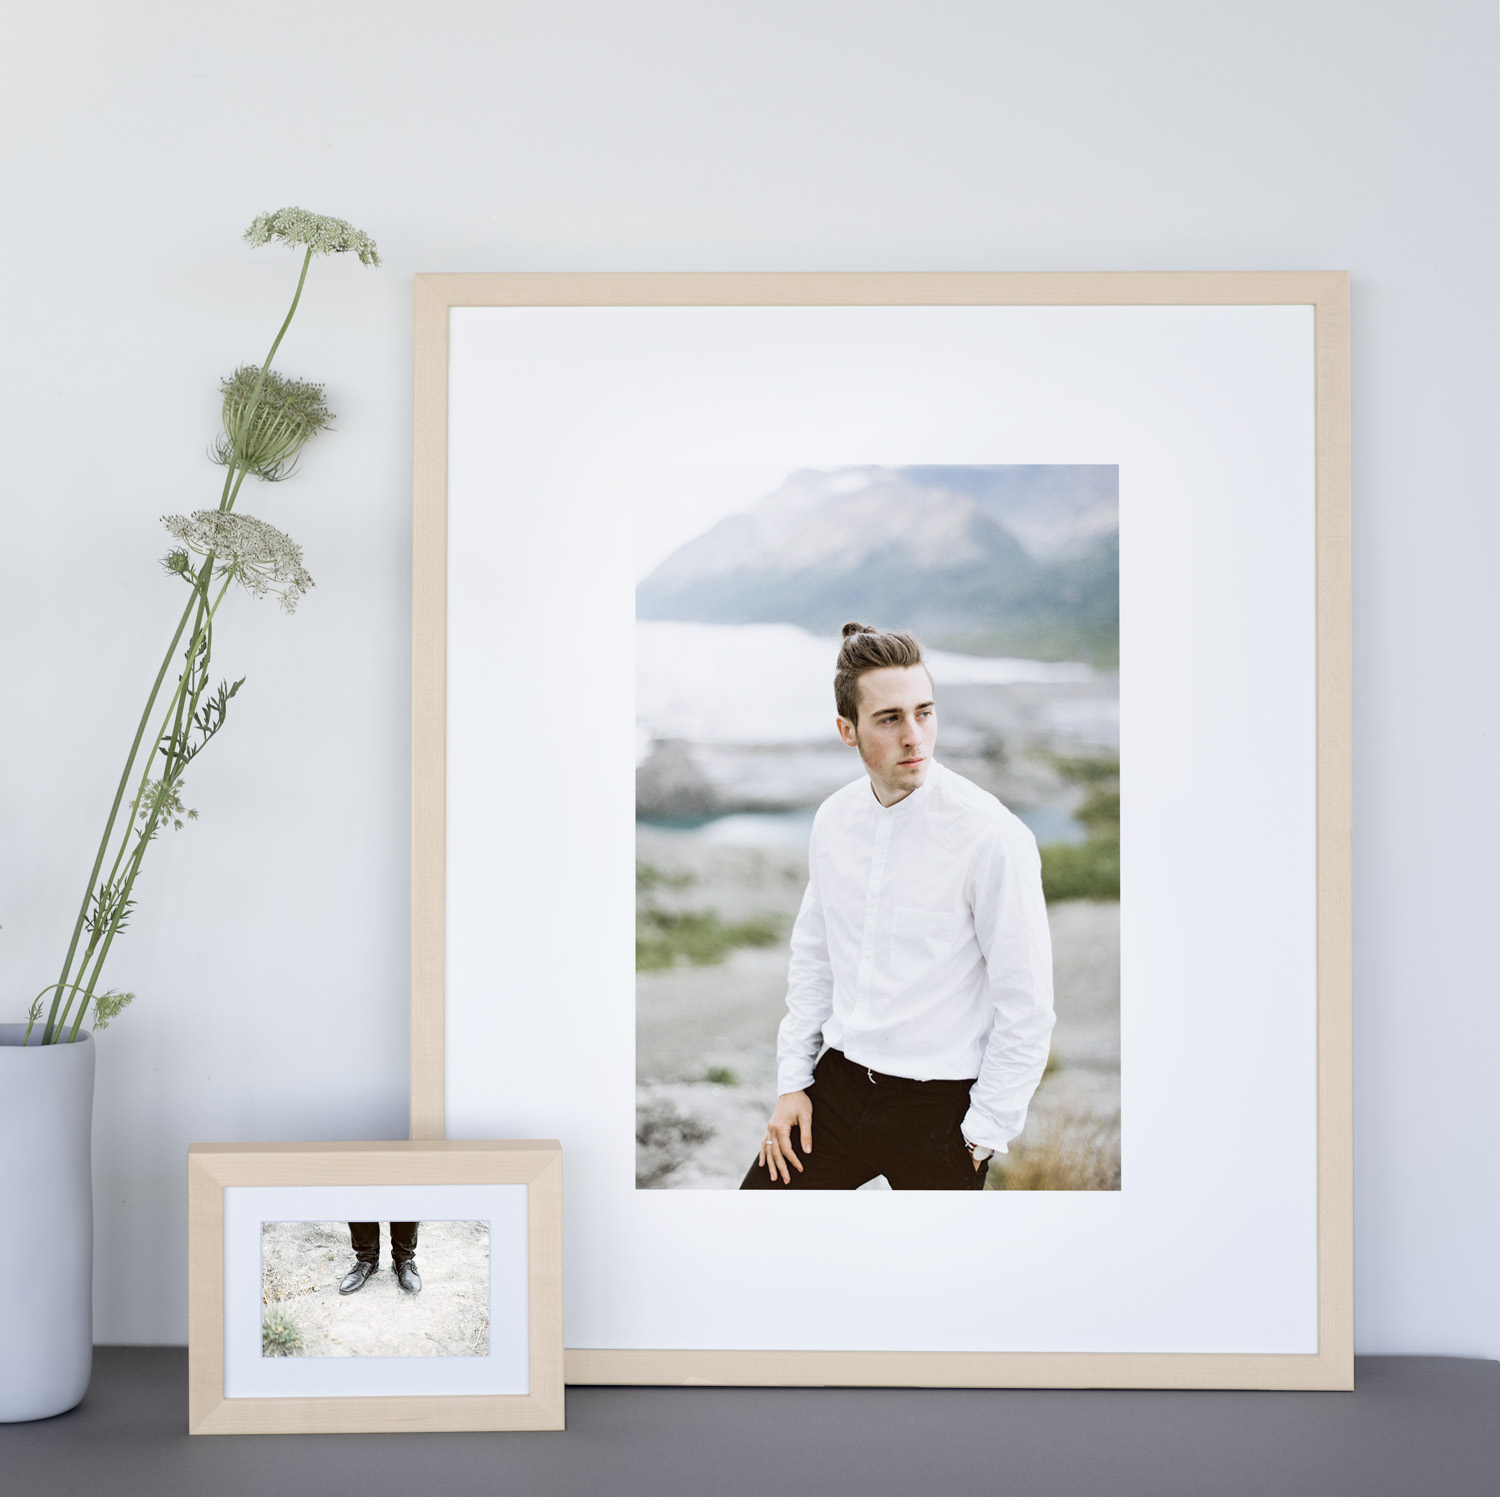 product sales photographers